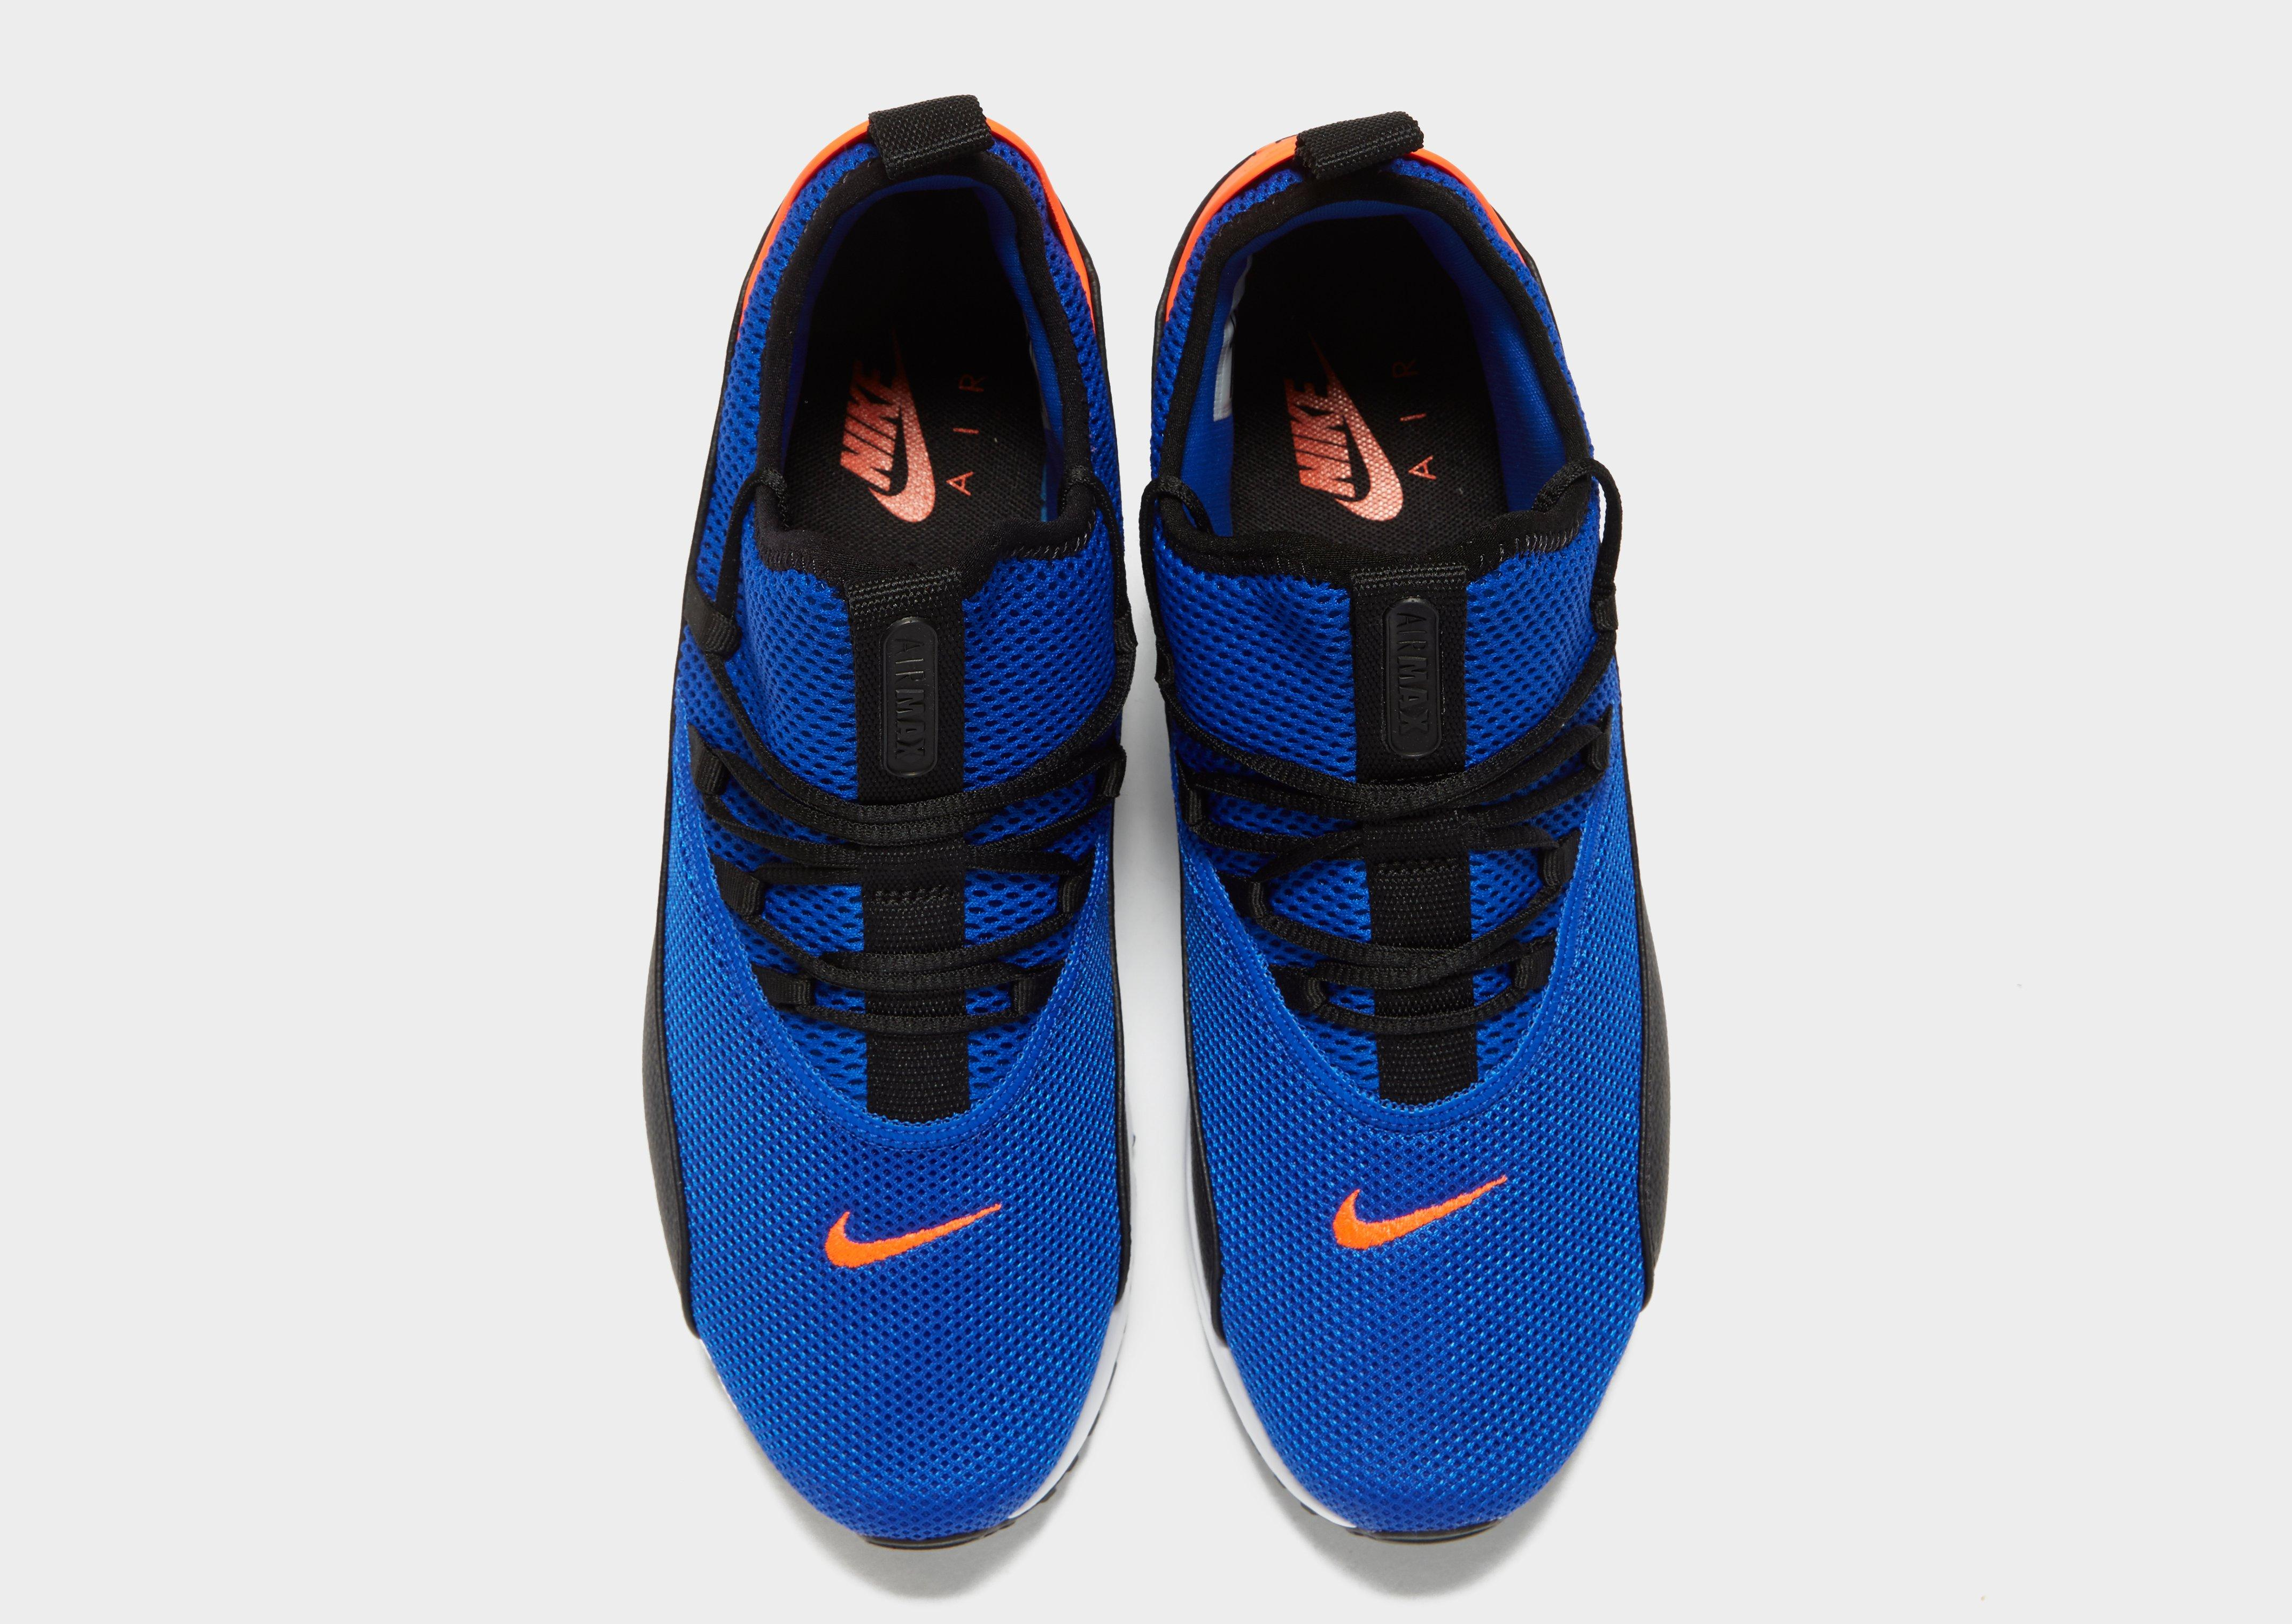 online store 687a9 b8ae7 These gel heel cups offer padding on the area of the pain in your foot.  However, things were not like it appeared to be. nike usa metcon